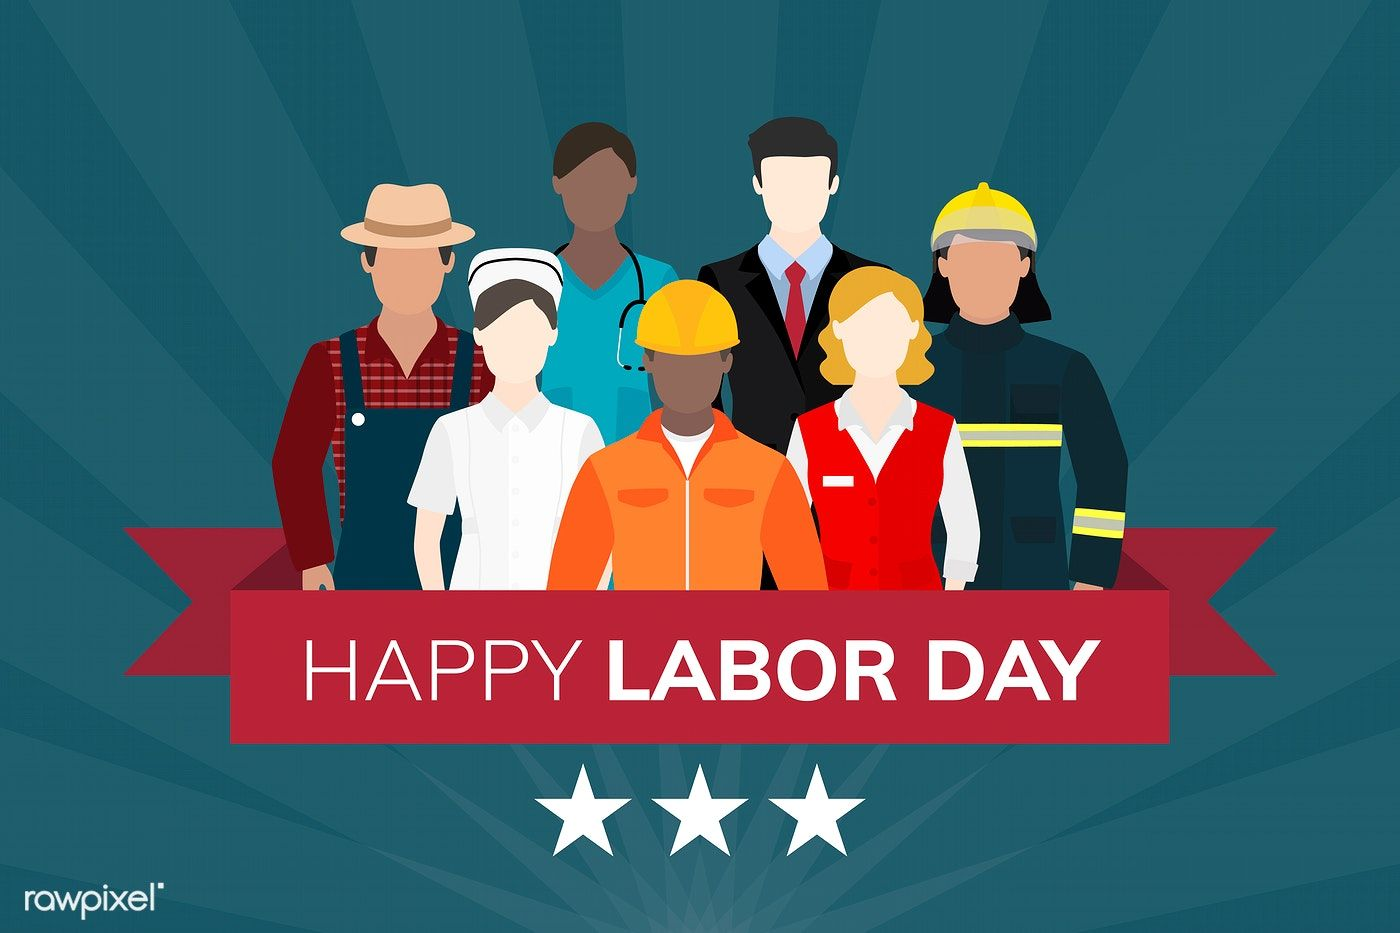 Diverse occupation celebrating labor day vector   free image by  rawpixel.com   Vector free, Happy labor day, Art quotes inspirational